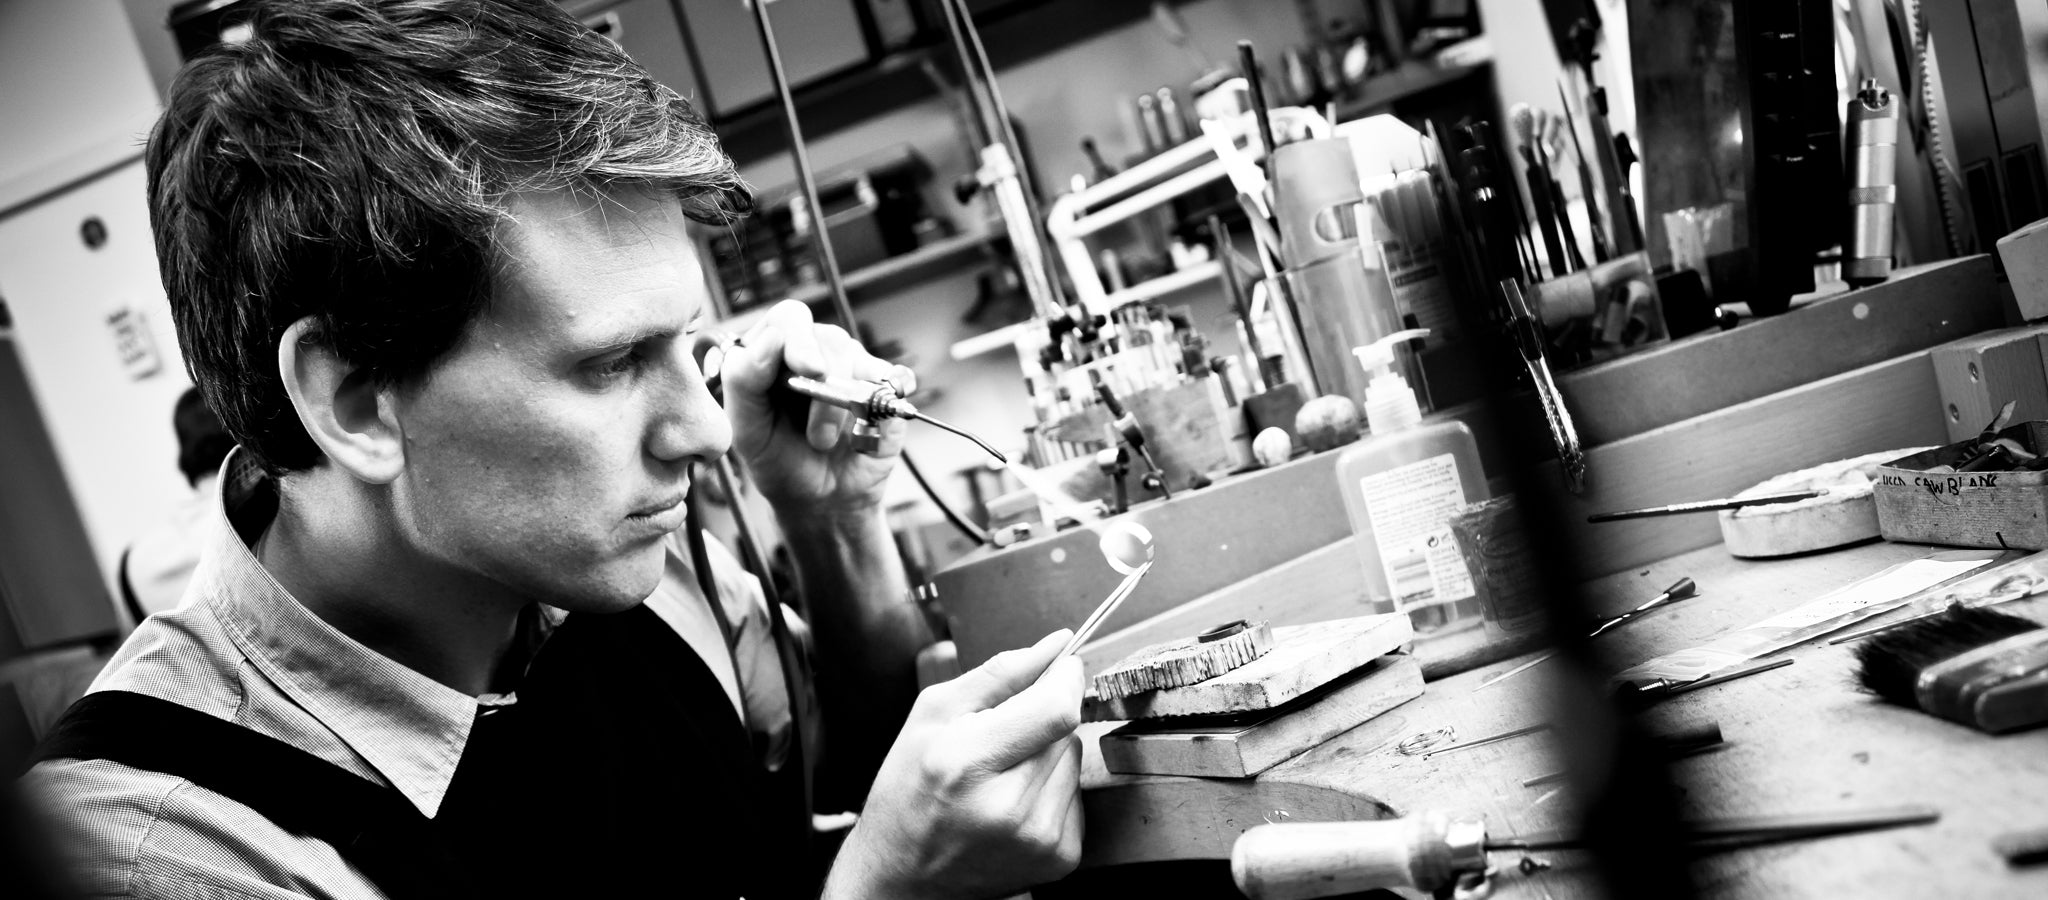 James Newman hand crafting jewellery at his jewellers bench in his Birmingham Jewellery Quarter workshop.